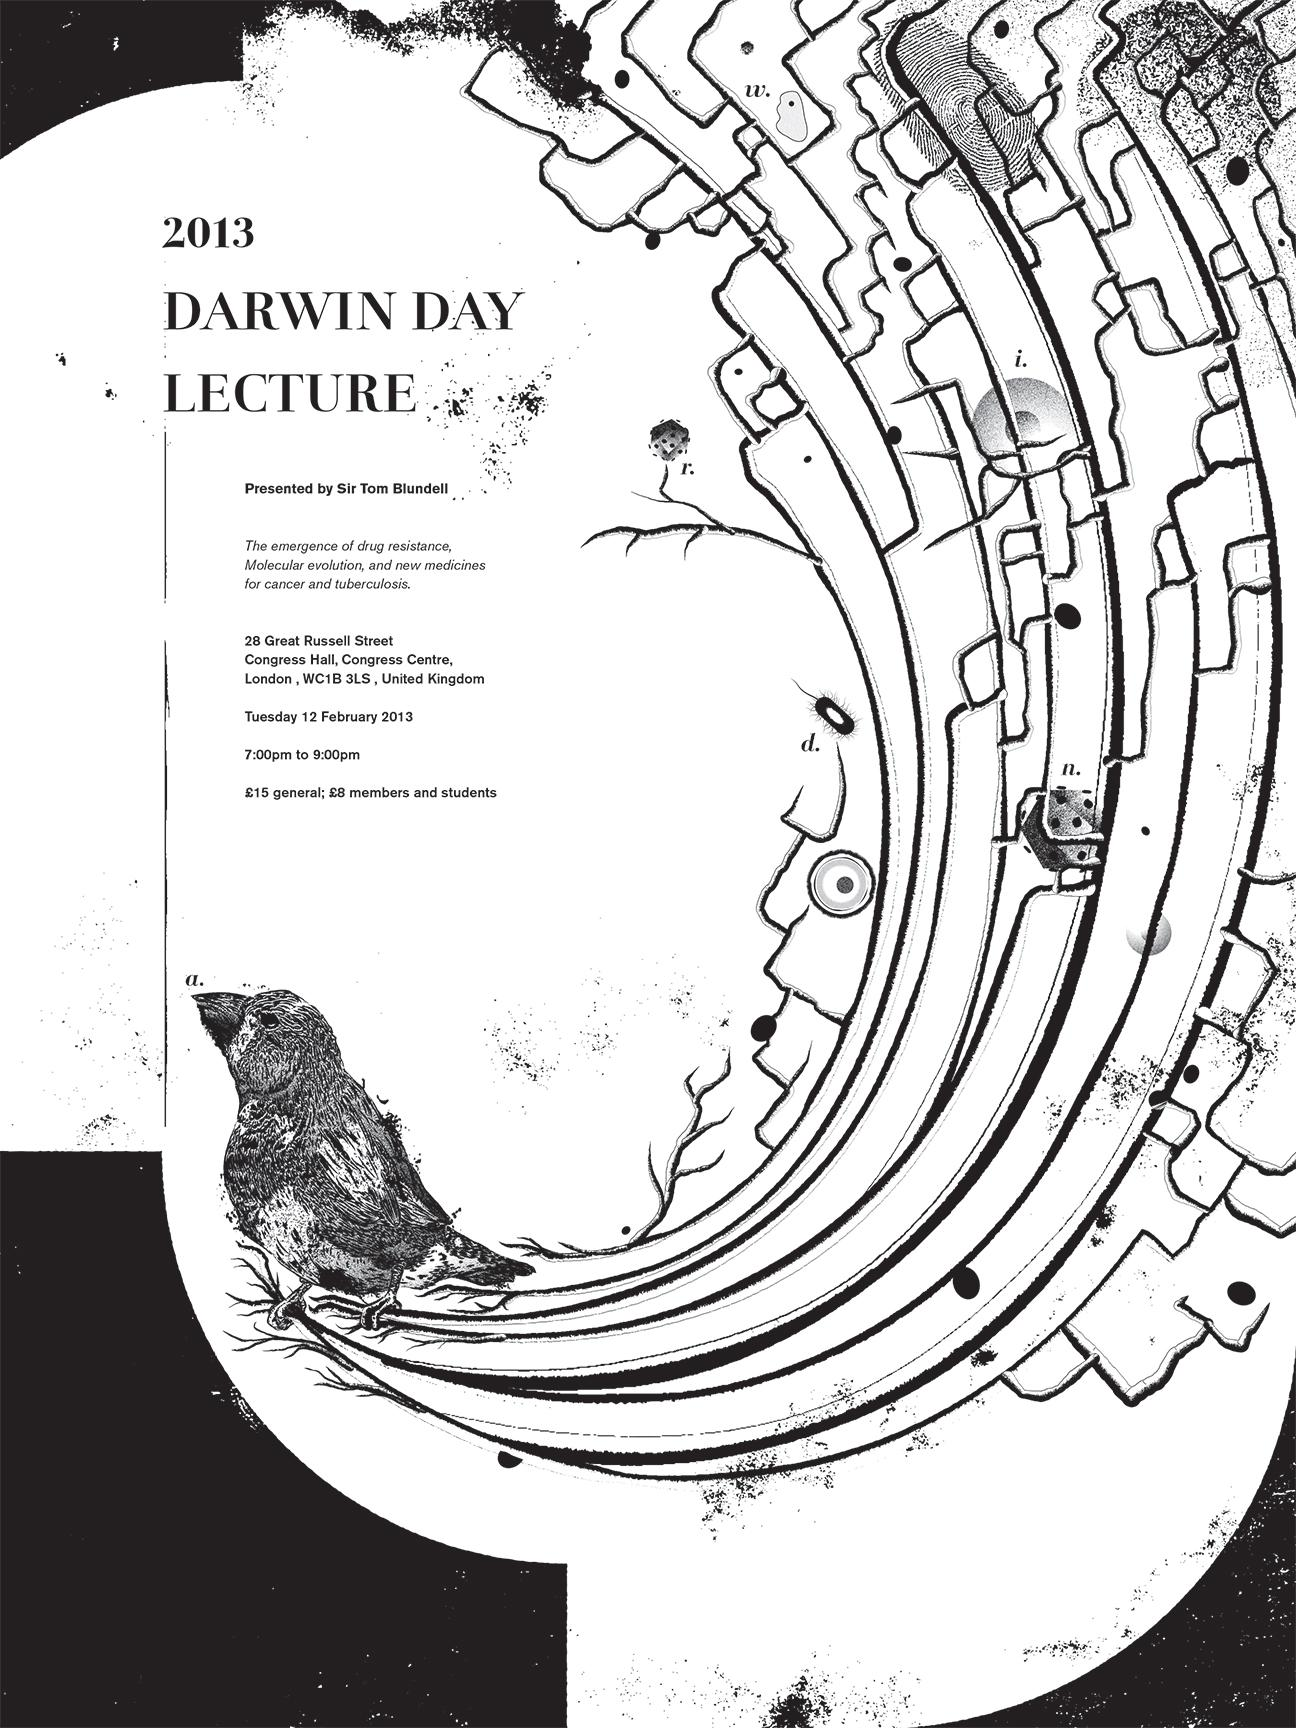 2013 Darwin Day Lecture by Richard Dawkins - image 1 - student project